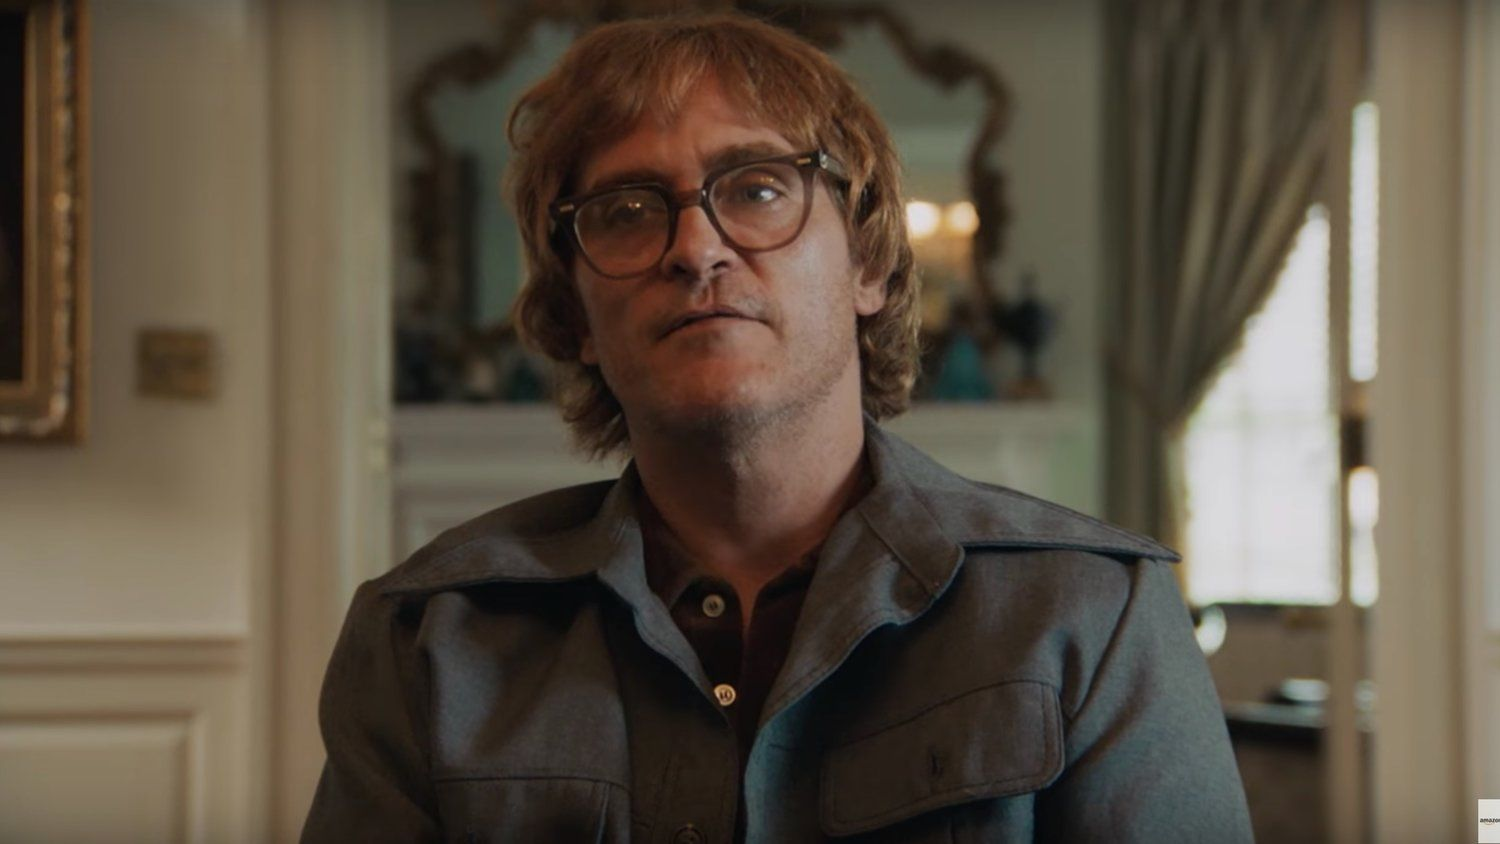 Watch Don't Worry, He Won't Get Far on Foot Full-Movie Streaming